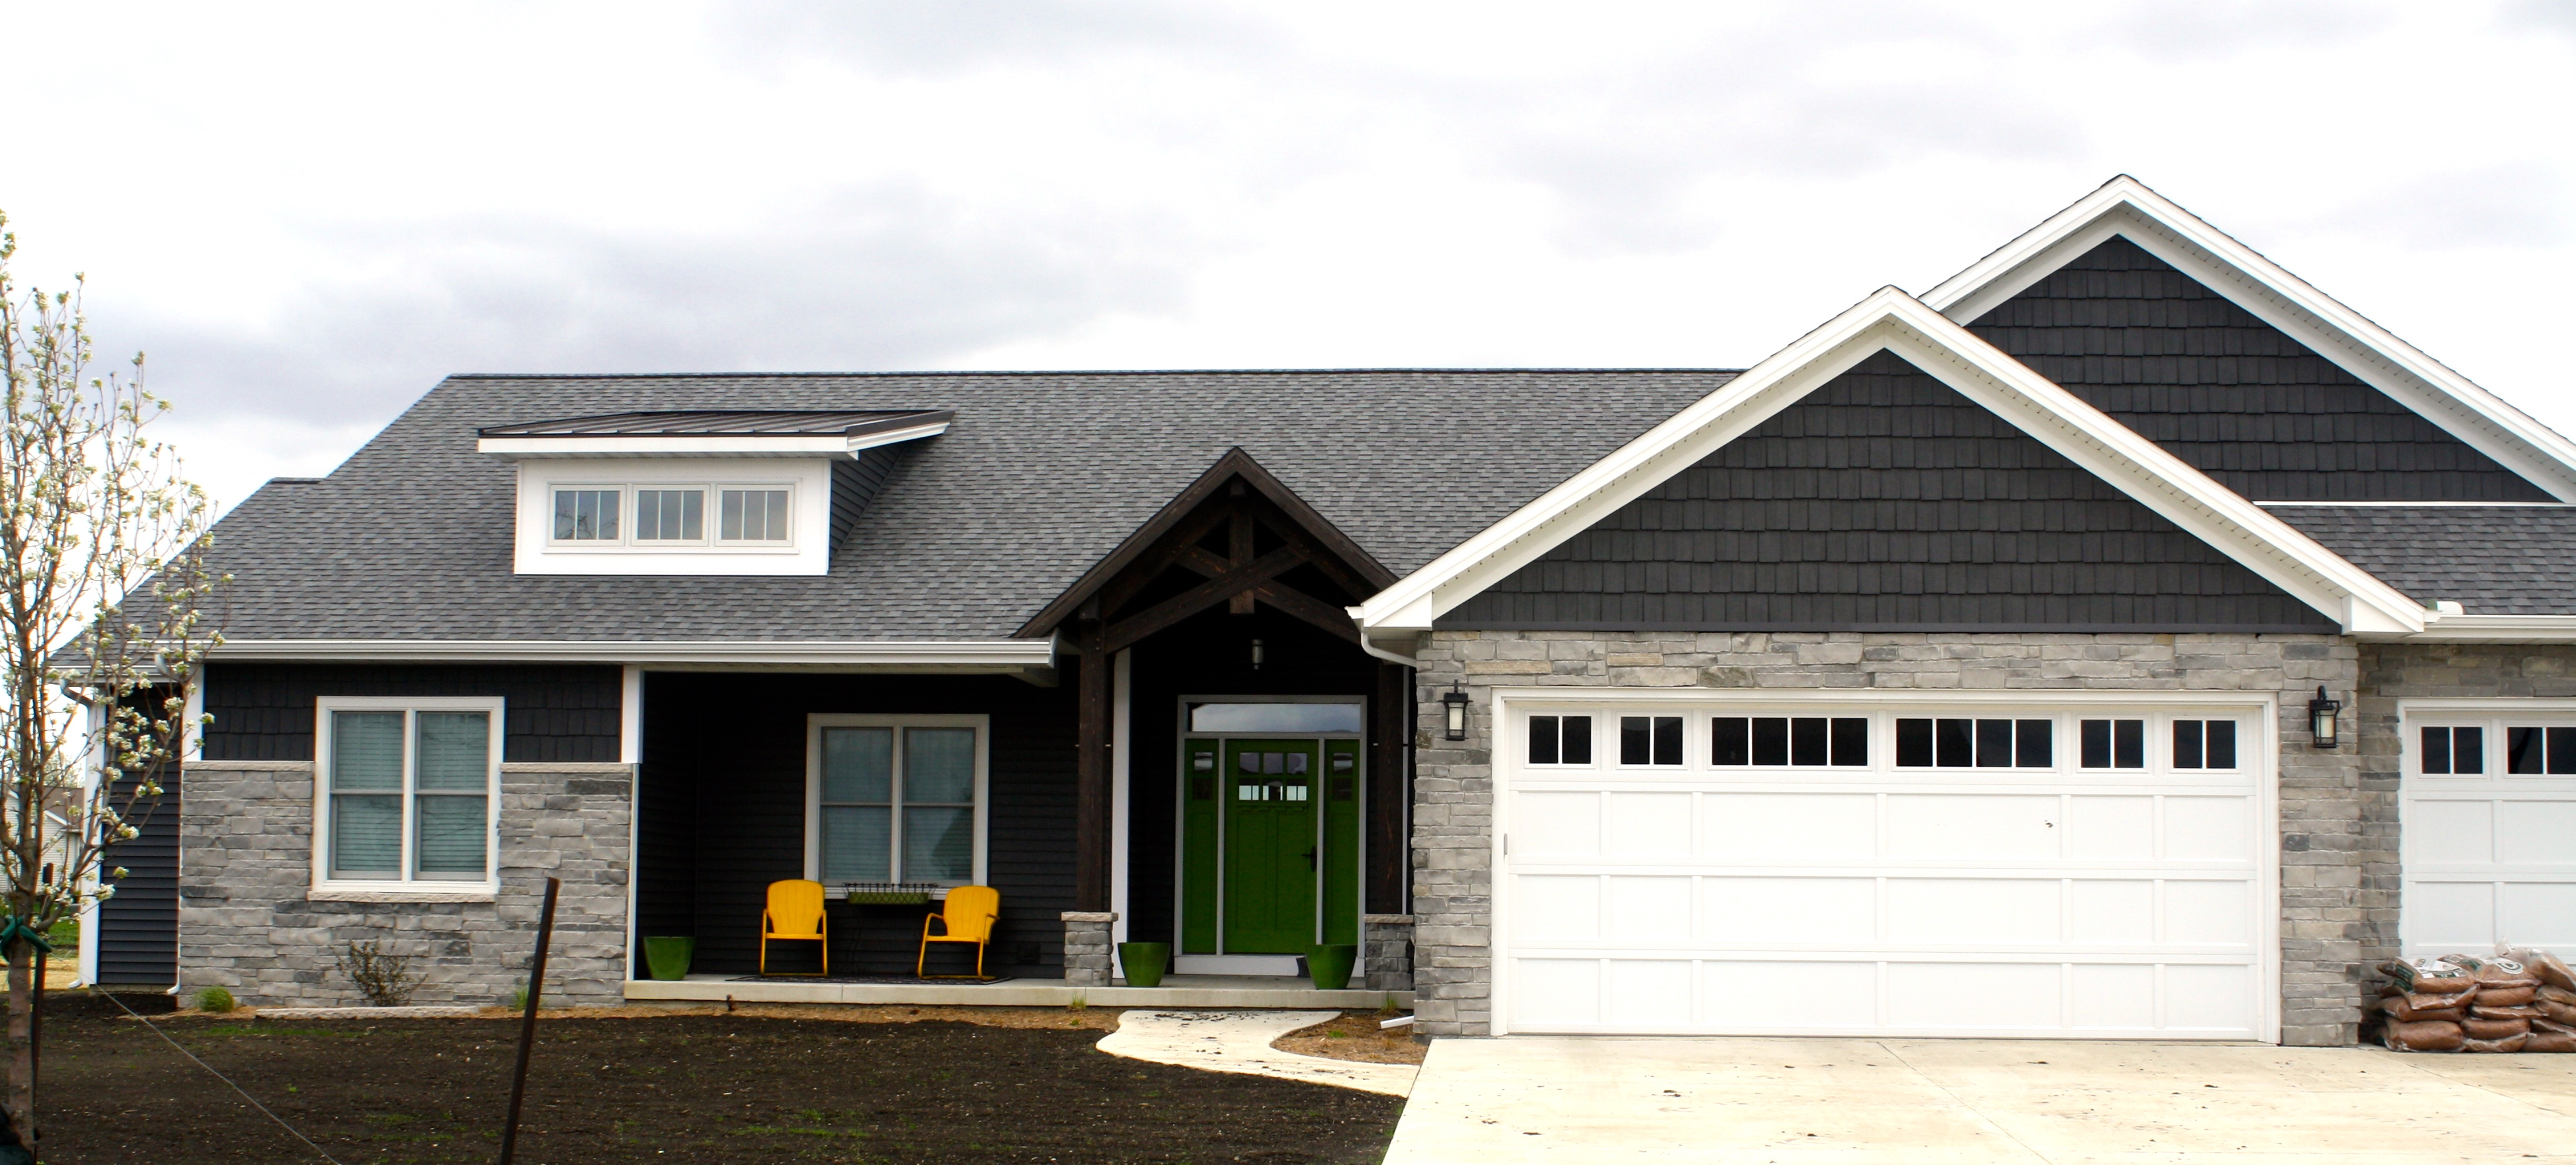 Ironstone Dark Grey Siding With Pewter Grey Shingles And